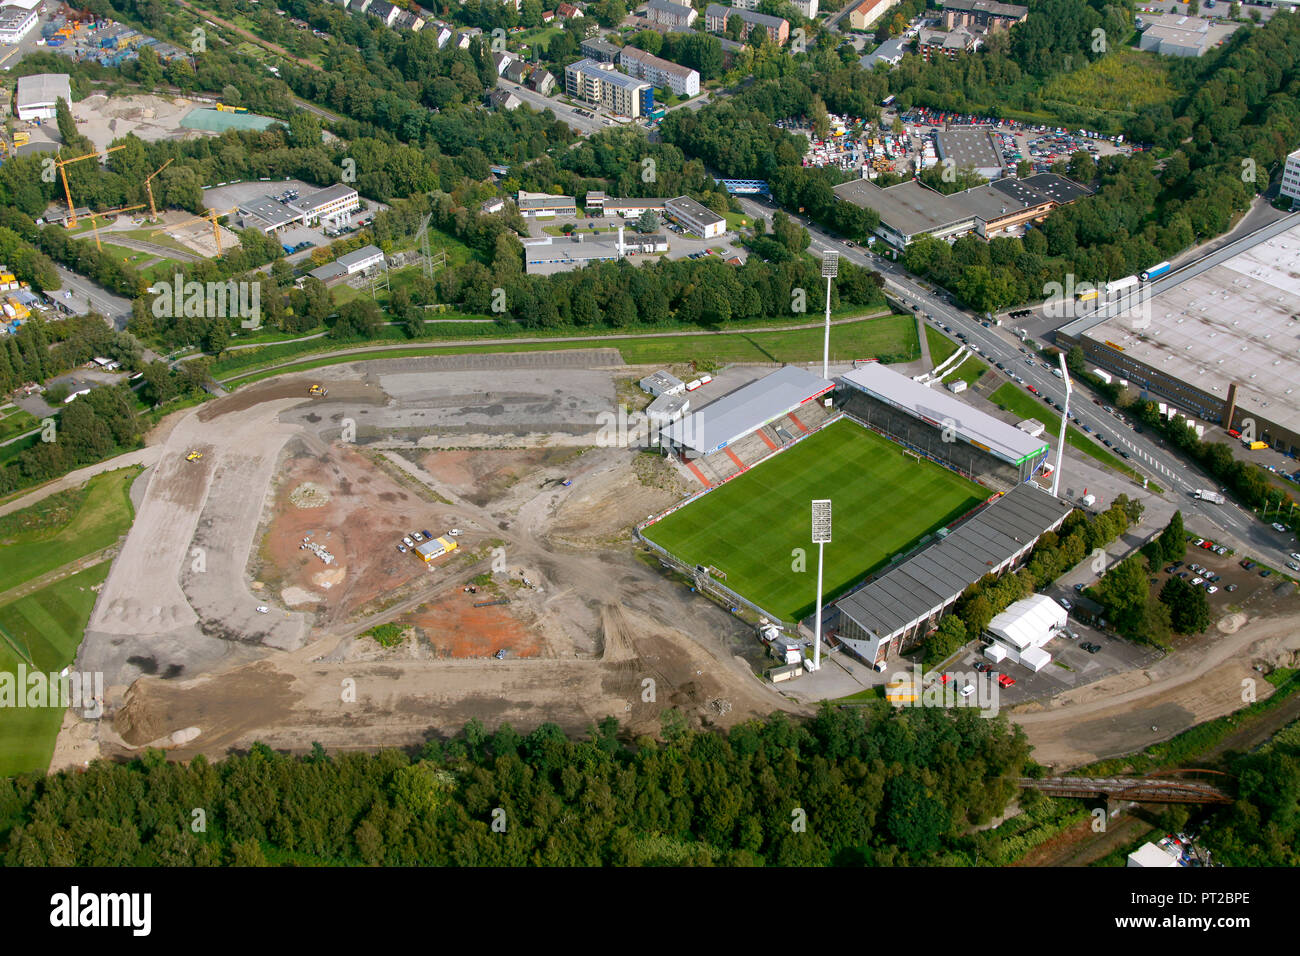 Aerial view, RWO stadium Rot Weiss Essen Hafenstraße, Essen, Ruhr area, North Rhine-Westphalia, Germany, Europe - Stock Image